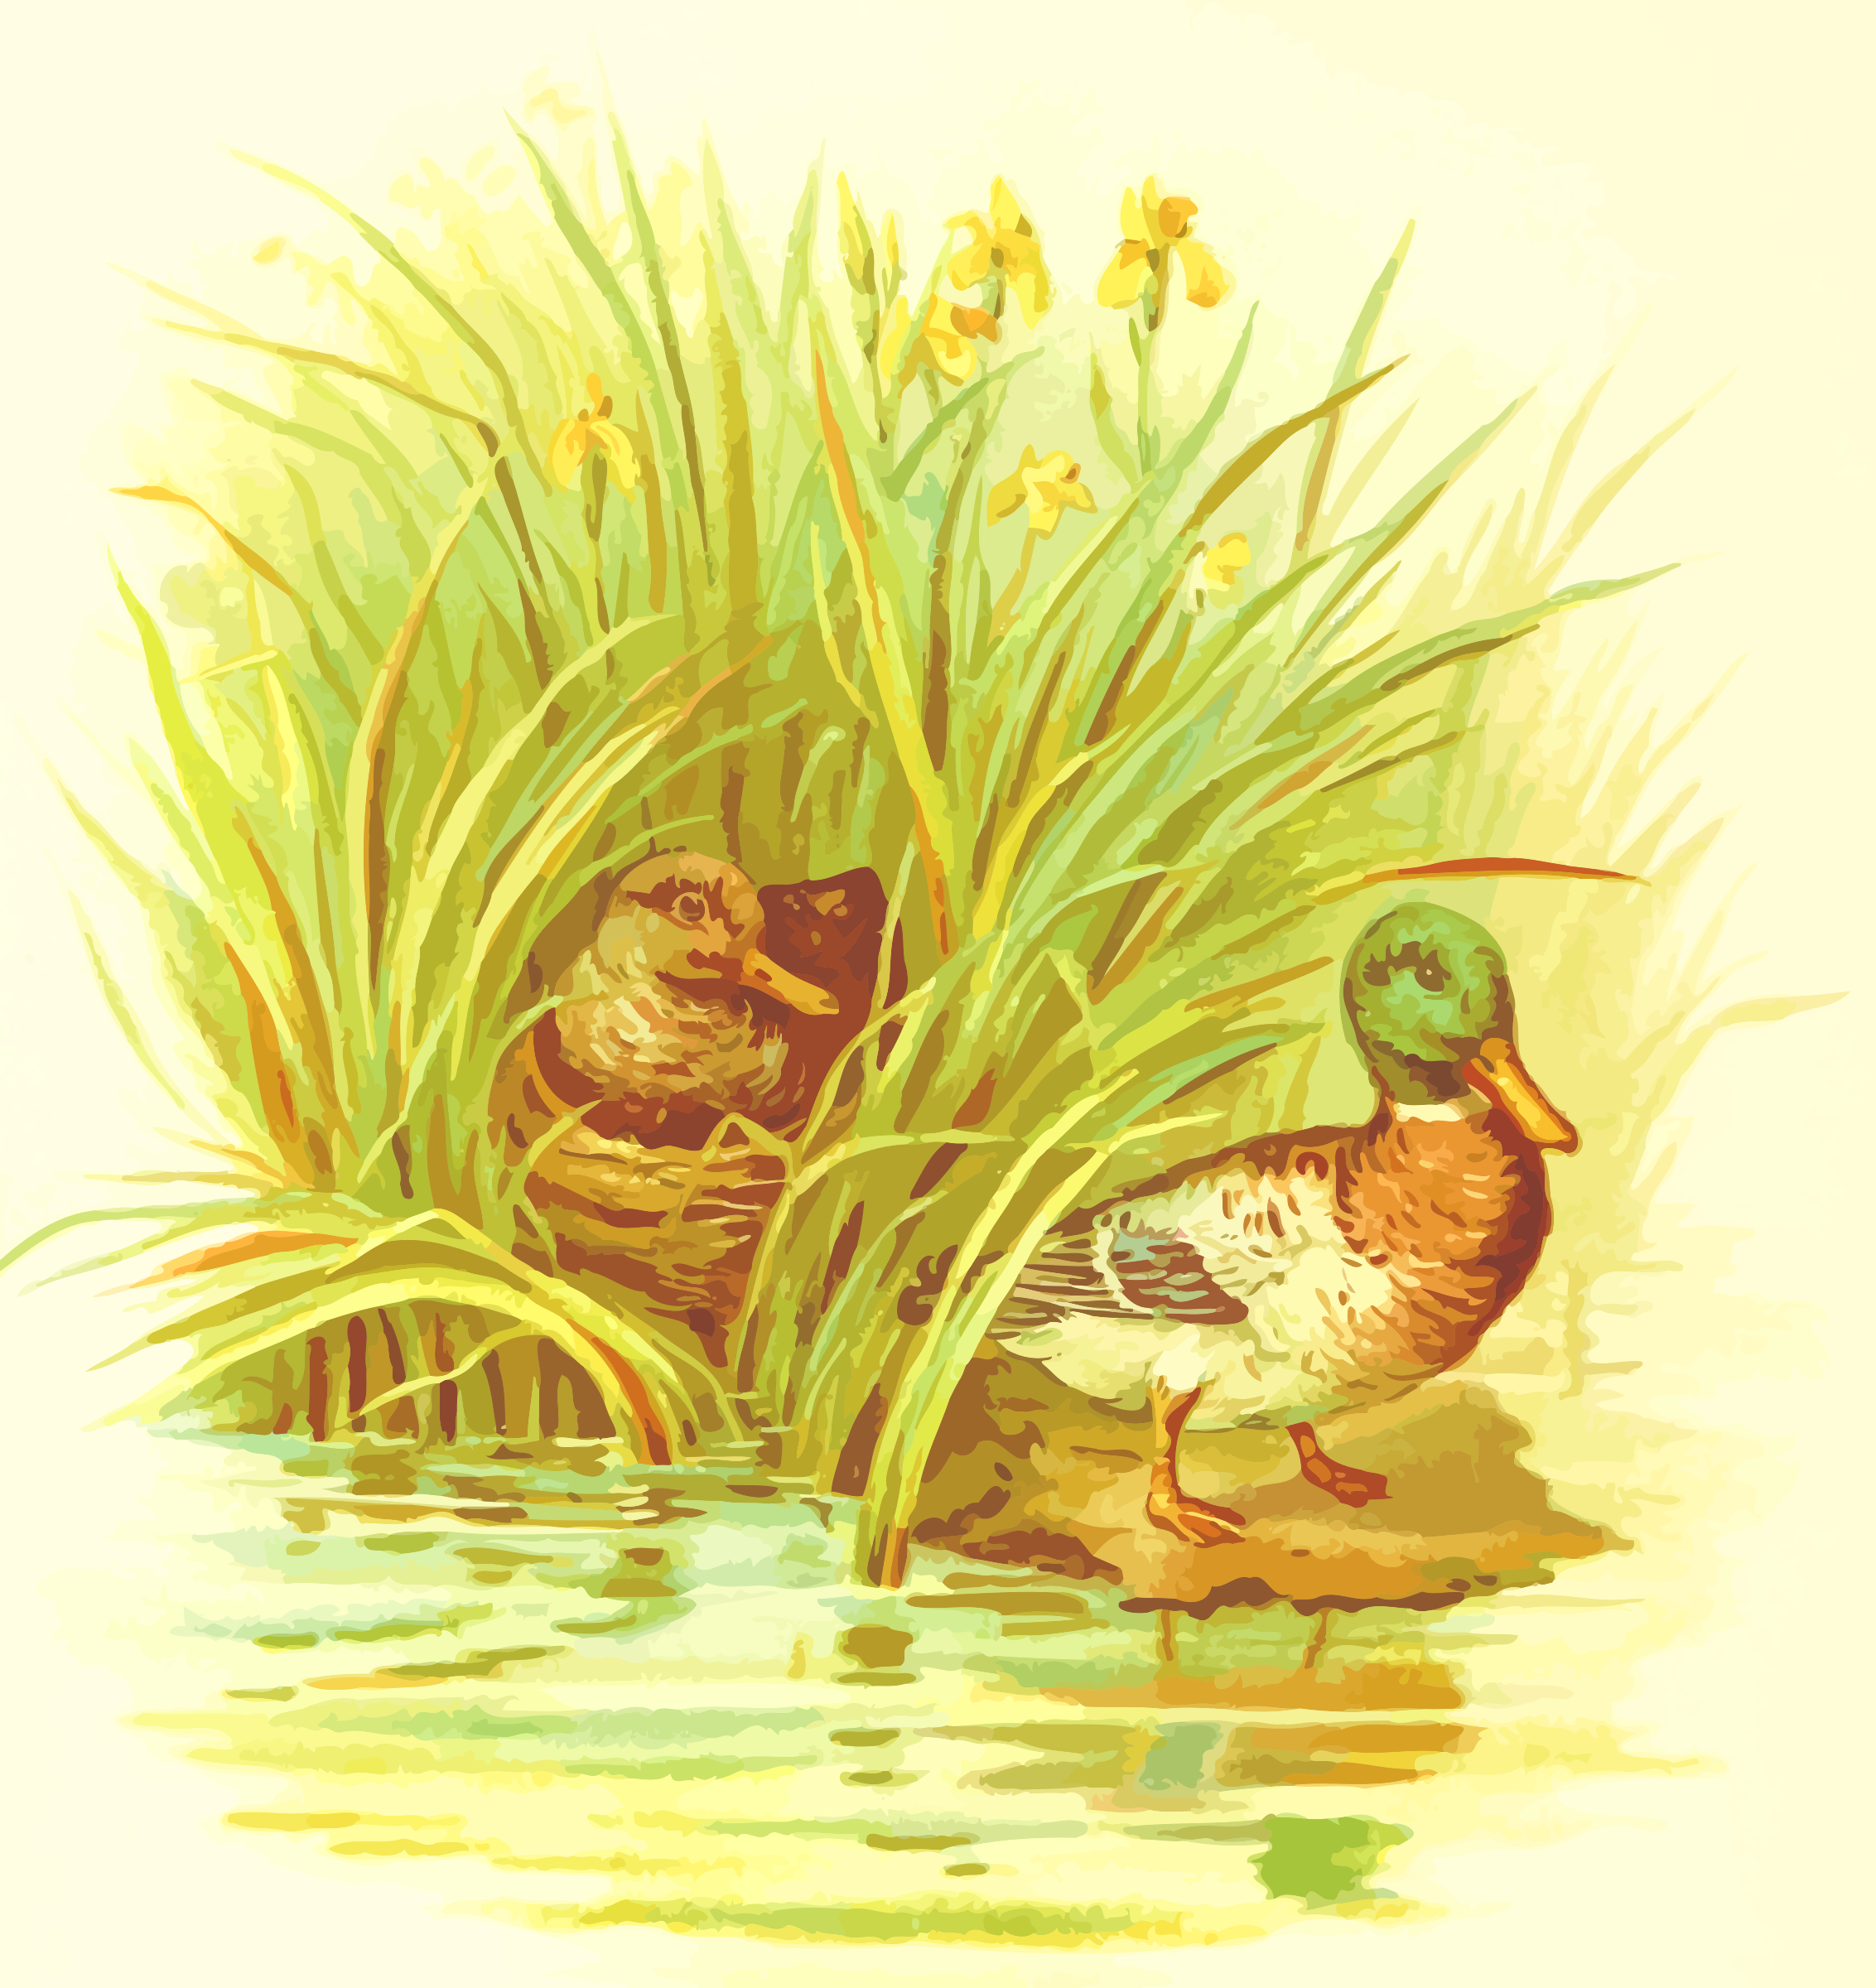 Ducks nest by Firkin